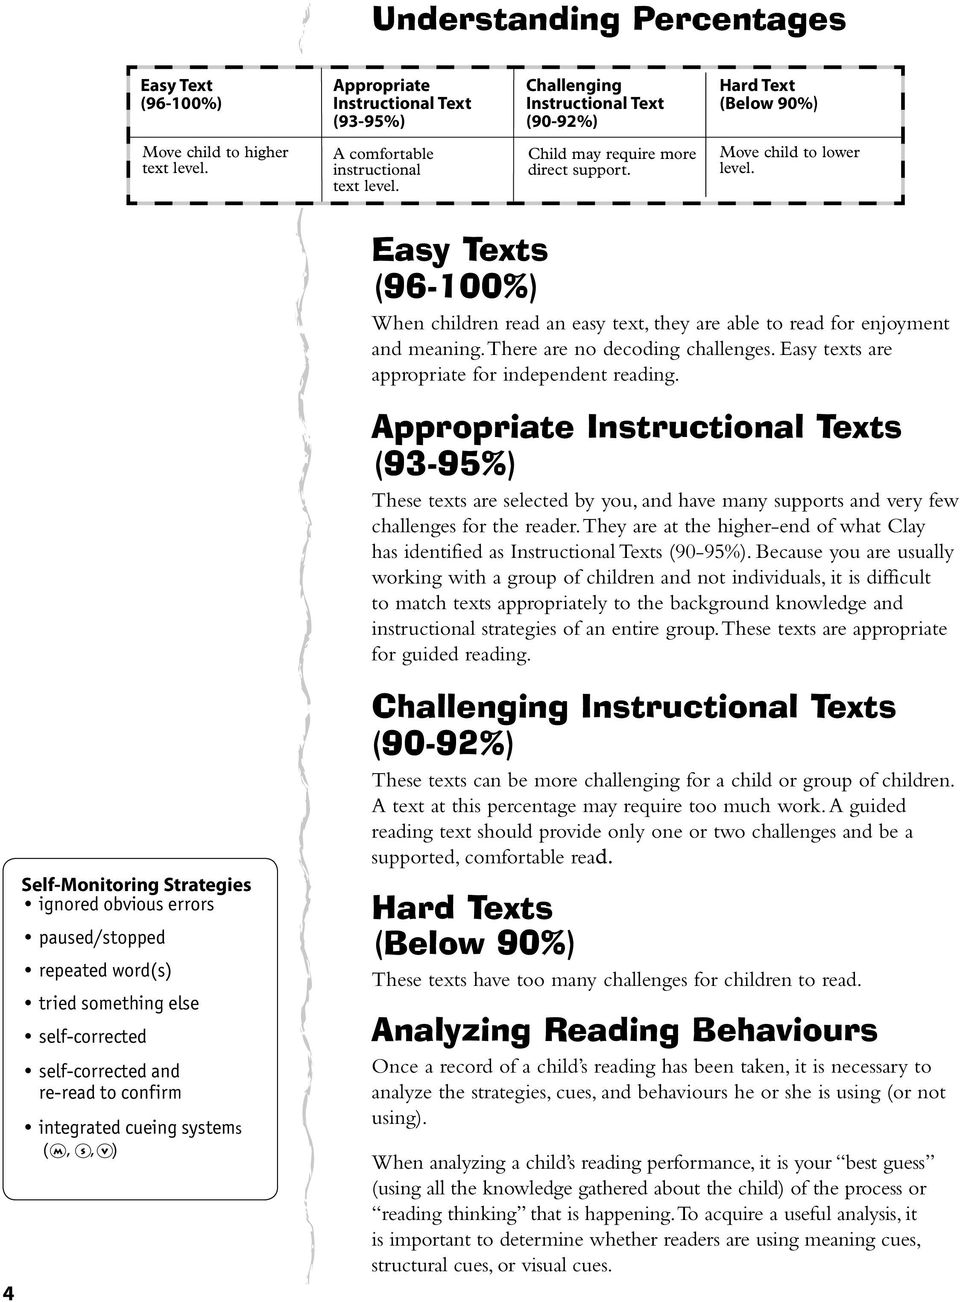 Easy Texts (96-100%) When children read an easy text, they are able to read for enjoyment and meaning. There are no decoding challenges. Easy texts are appropriate for independent reading.